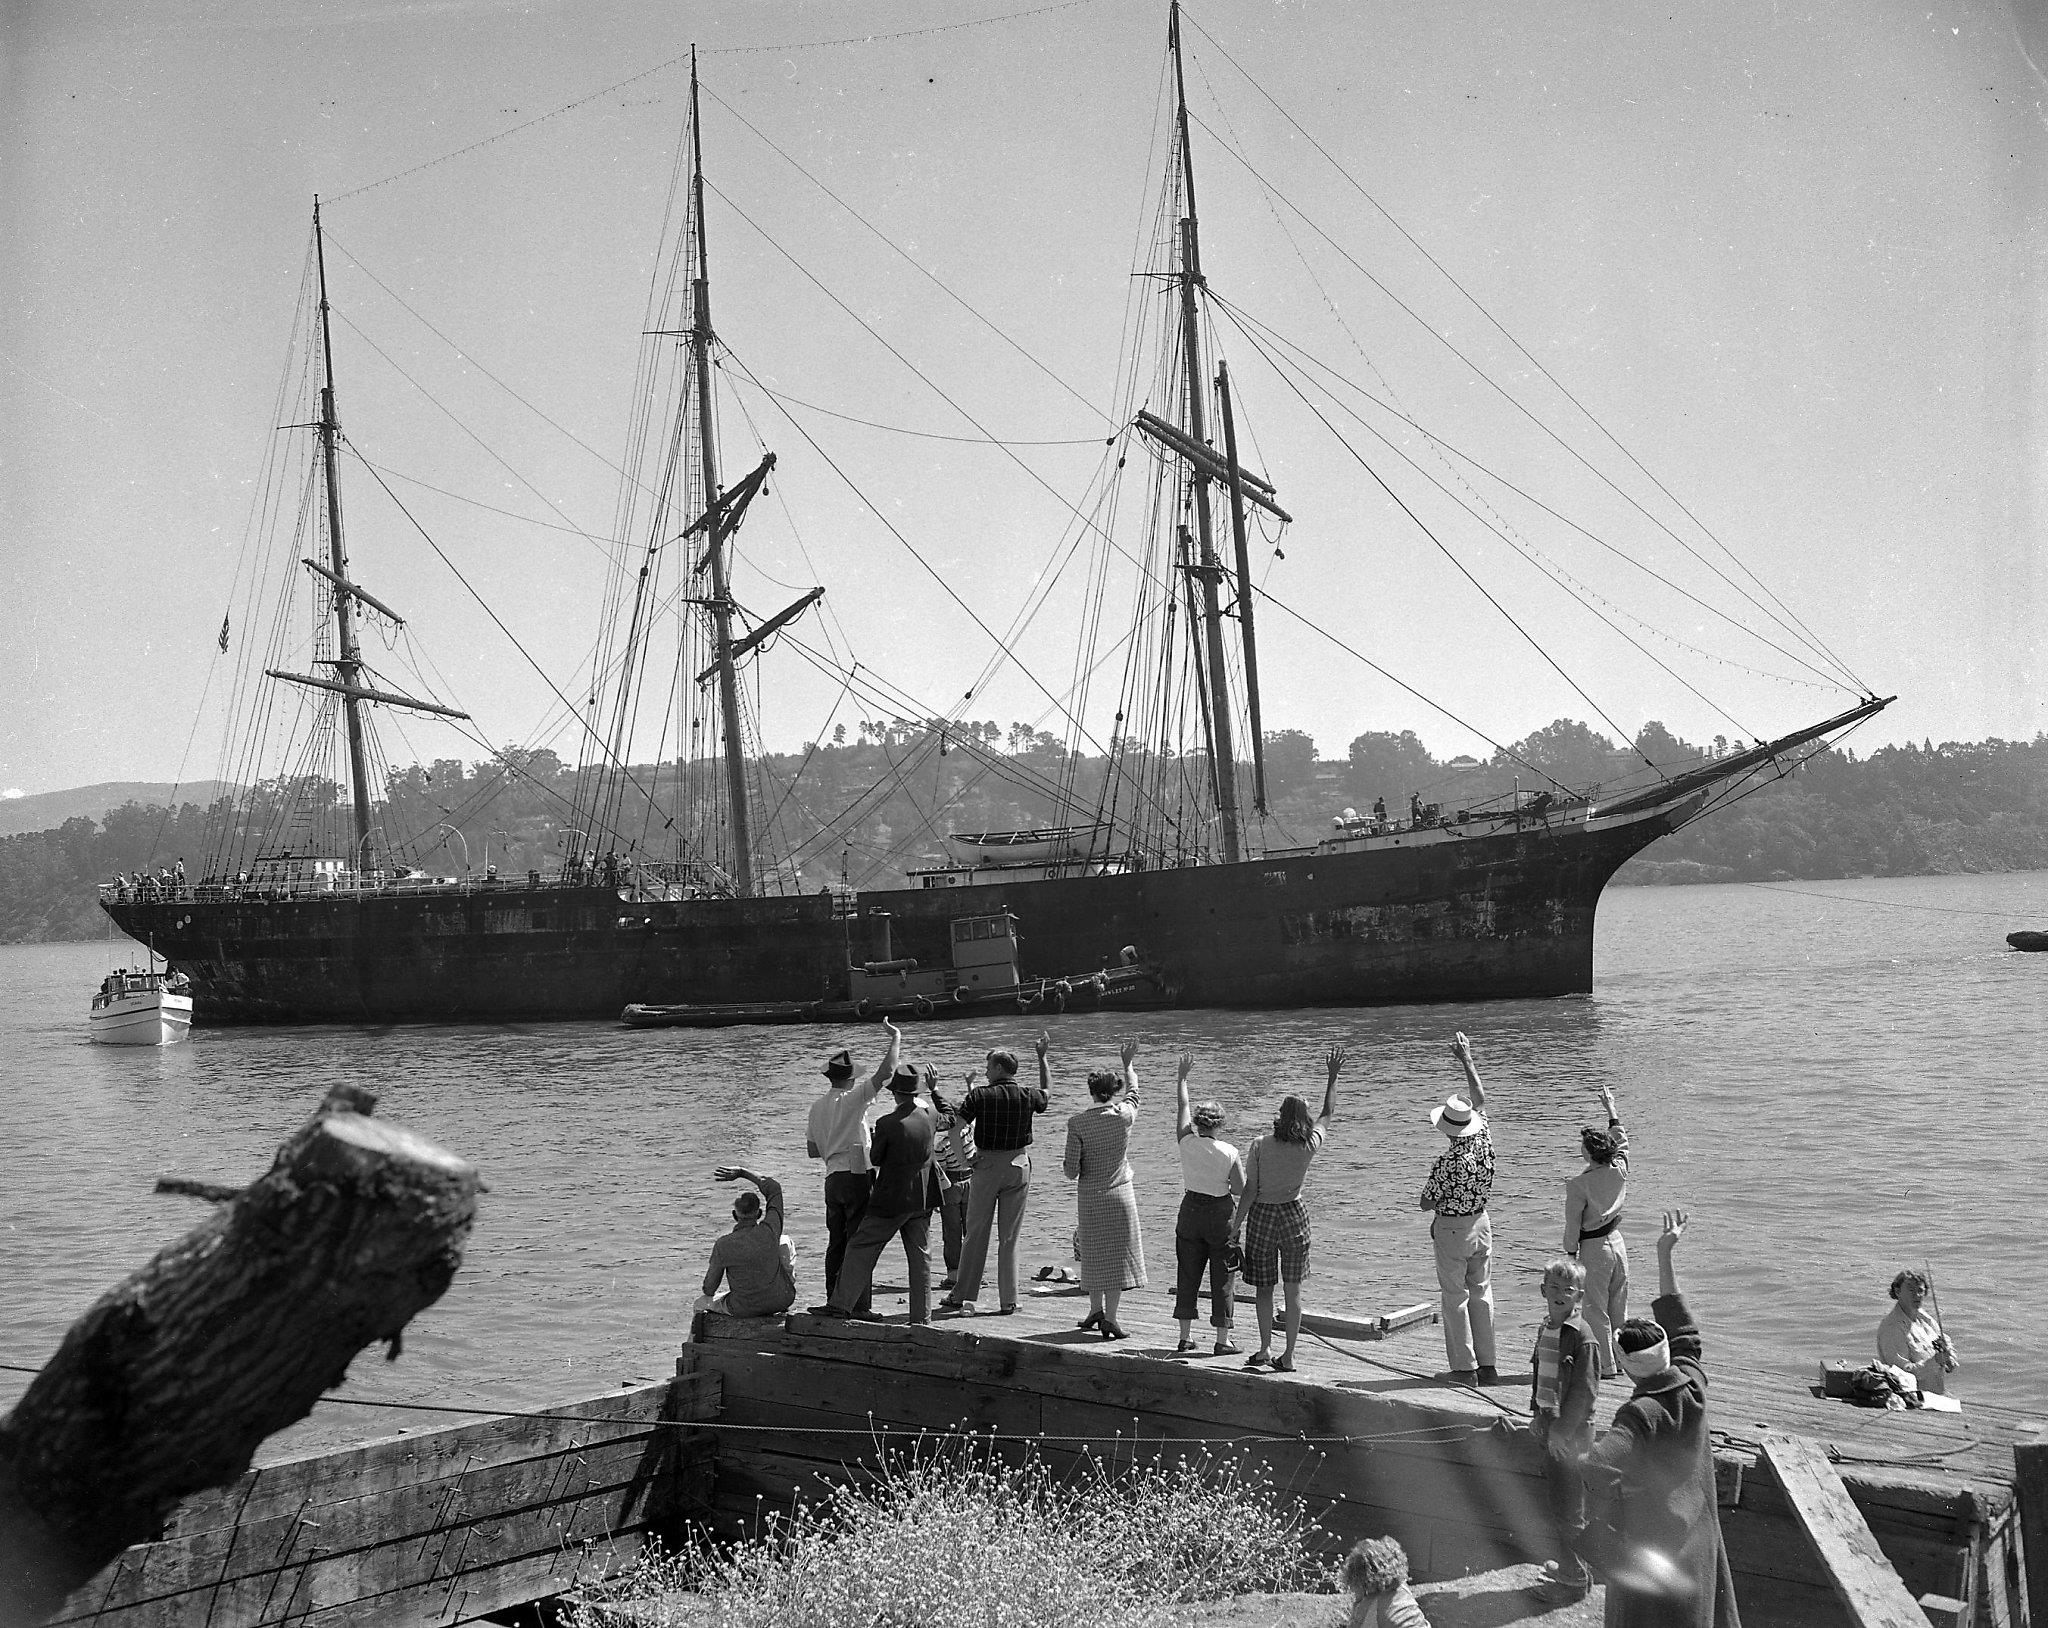 SFs Balclutha Tracing The 130 Year Voyage Of A Landmark Ship